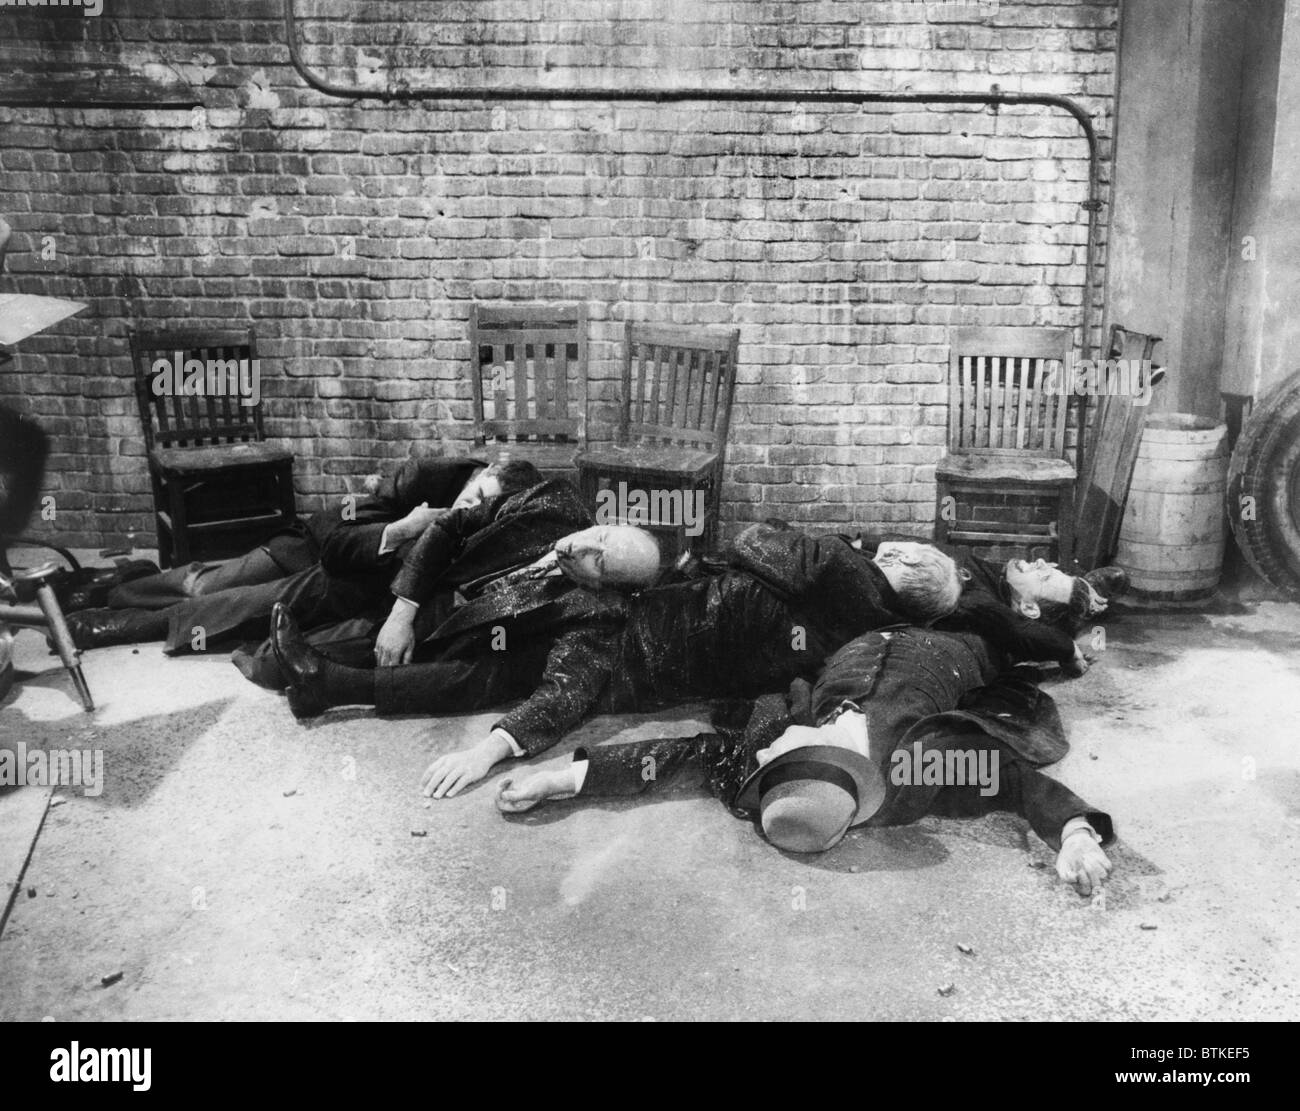 Re-enactment of the St. Valentine's Day massacre from Roger Corman's 1967 film, THE ST. VALENTINE'S - Stock Image